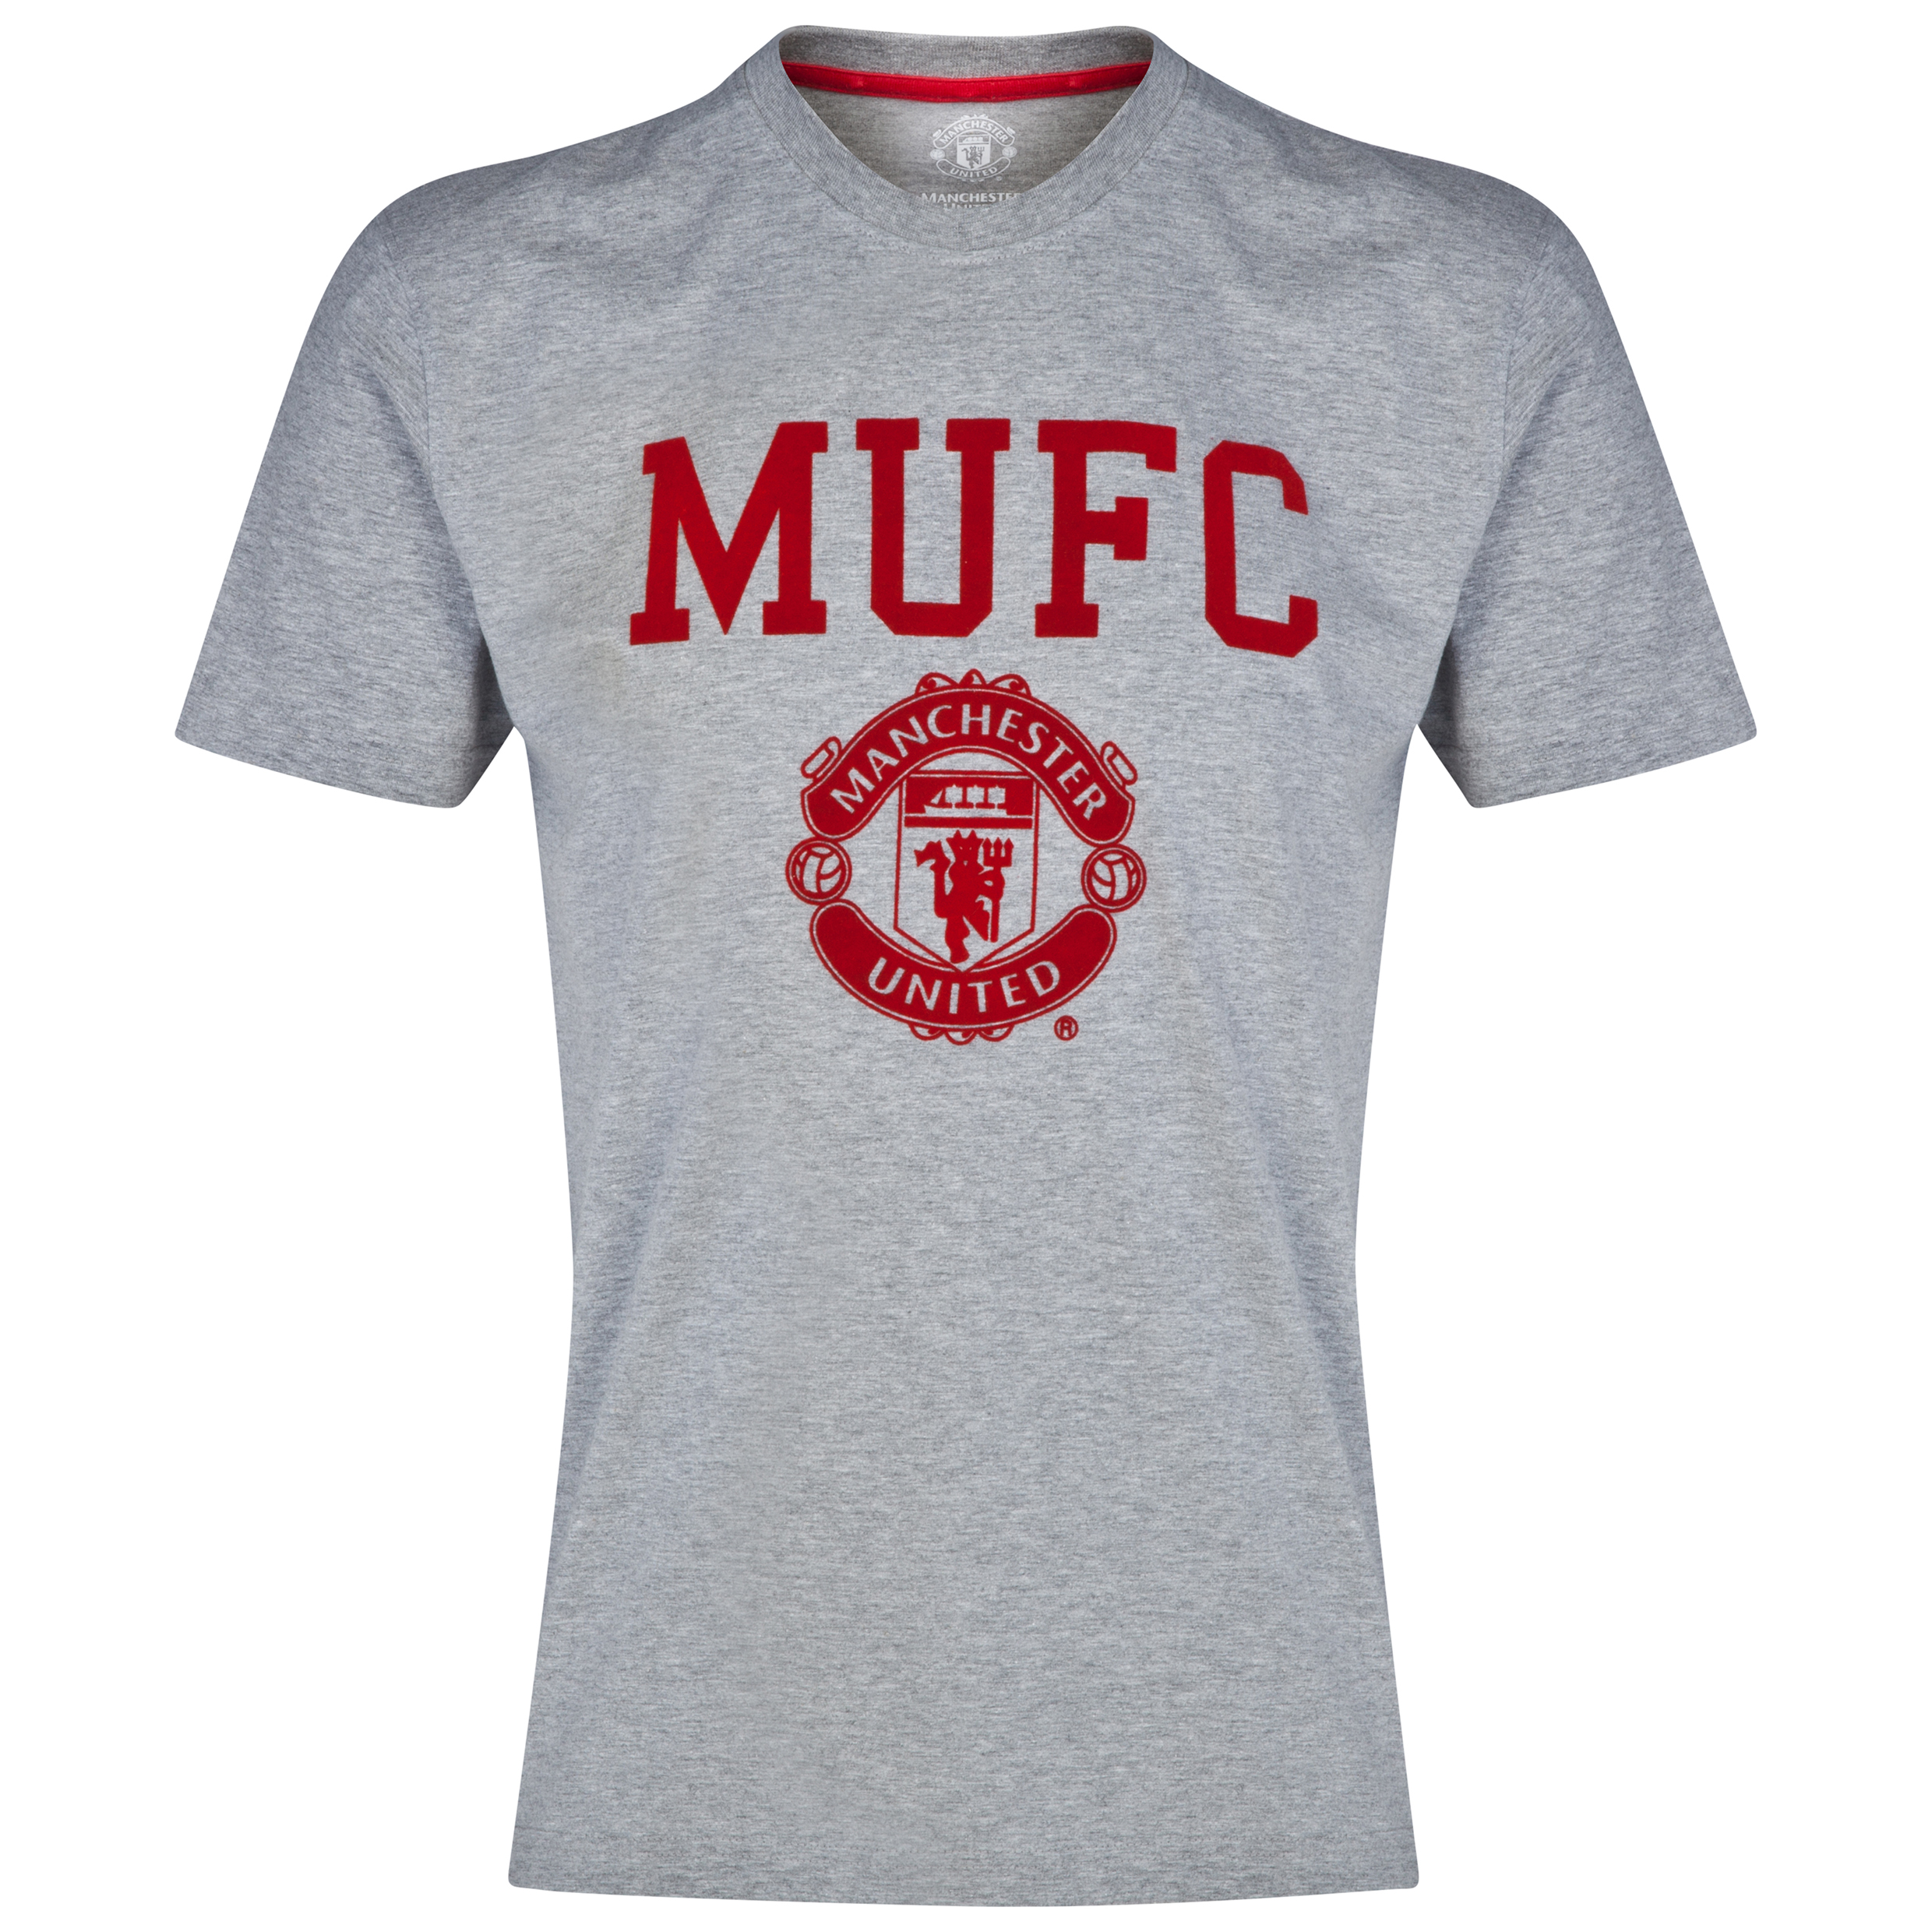 Manchester United Classic T-Shirt - Grey Marl - Mens